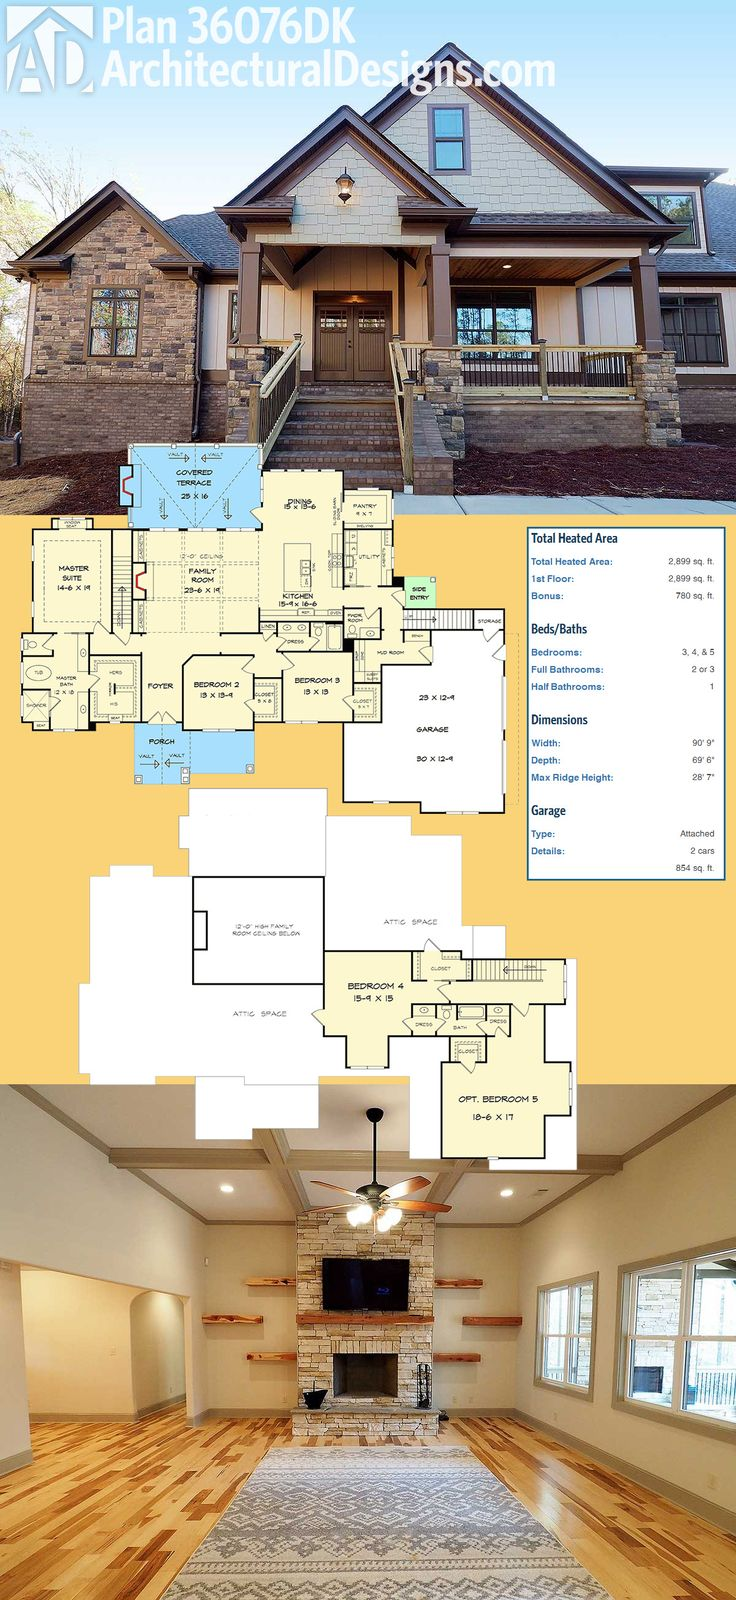 Architecture House Design Plans best 20+ floor plans ideas on pinterest | house floor plans, house